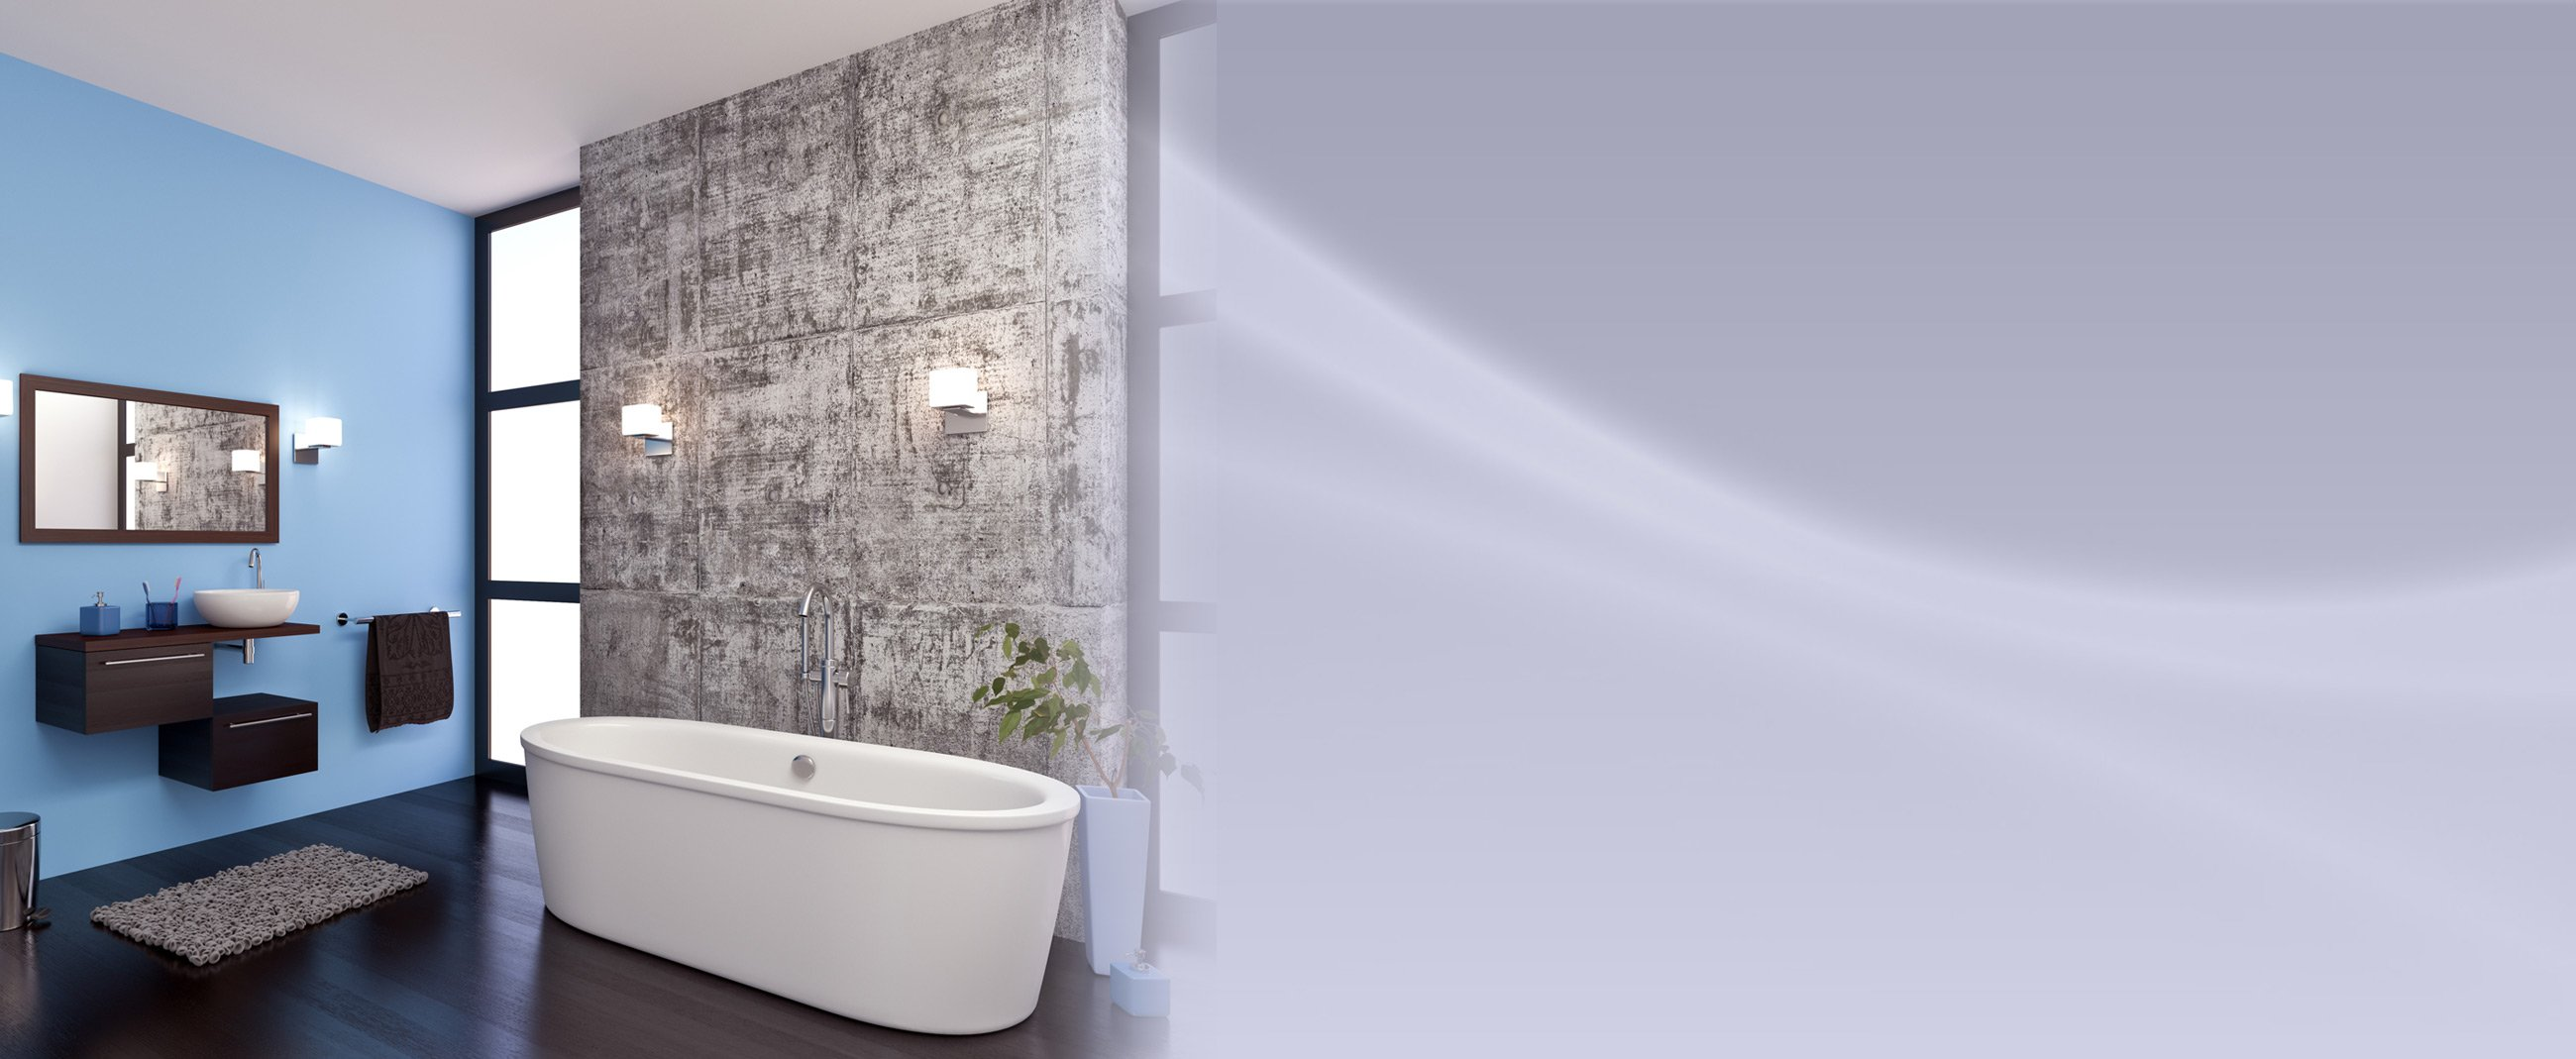 Bathroom painting services protegrity painting contractor - Interior exterior painting services set ...